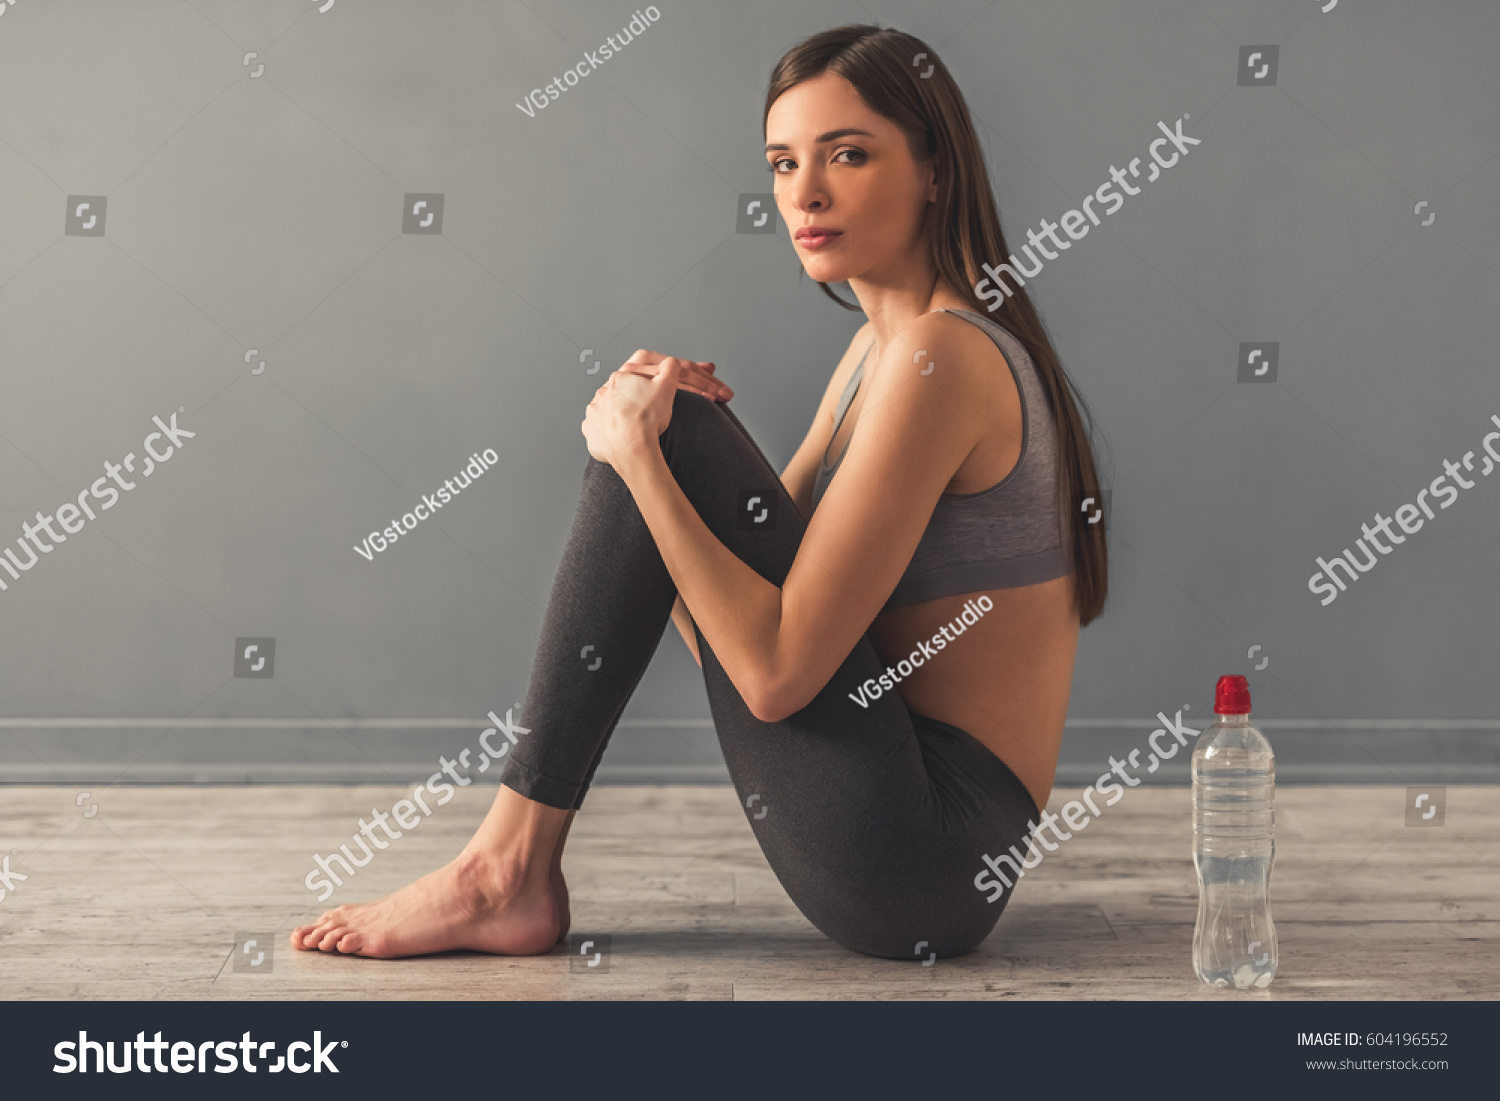 anorex granny Suffering from anorexia. Girl is sitting lonely on the floor, a bottle of  water